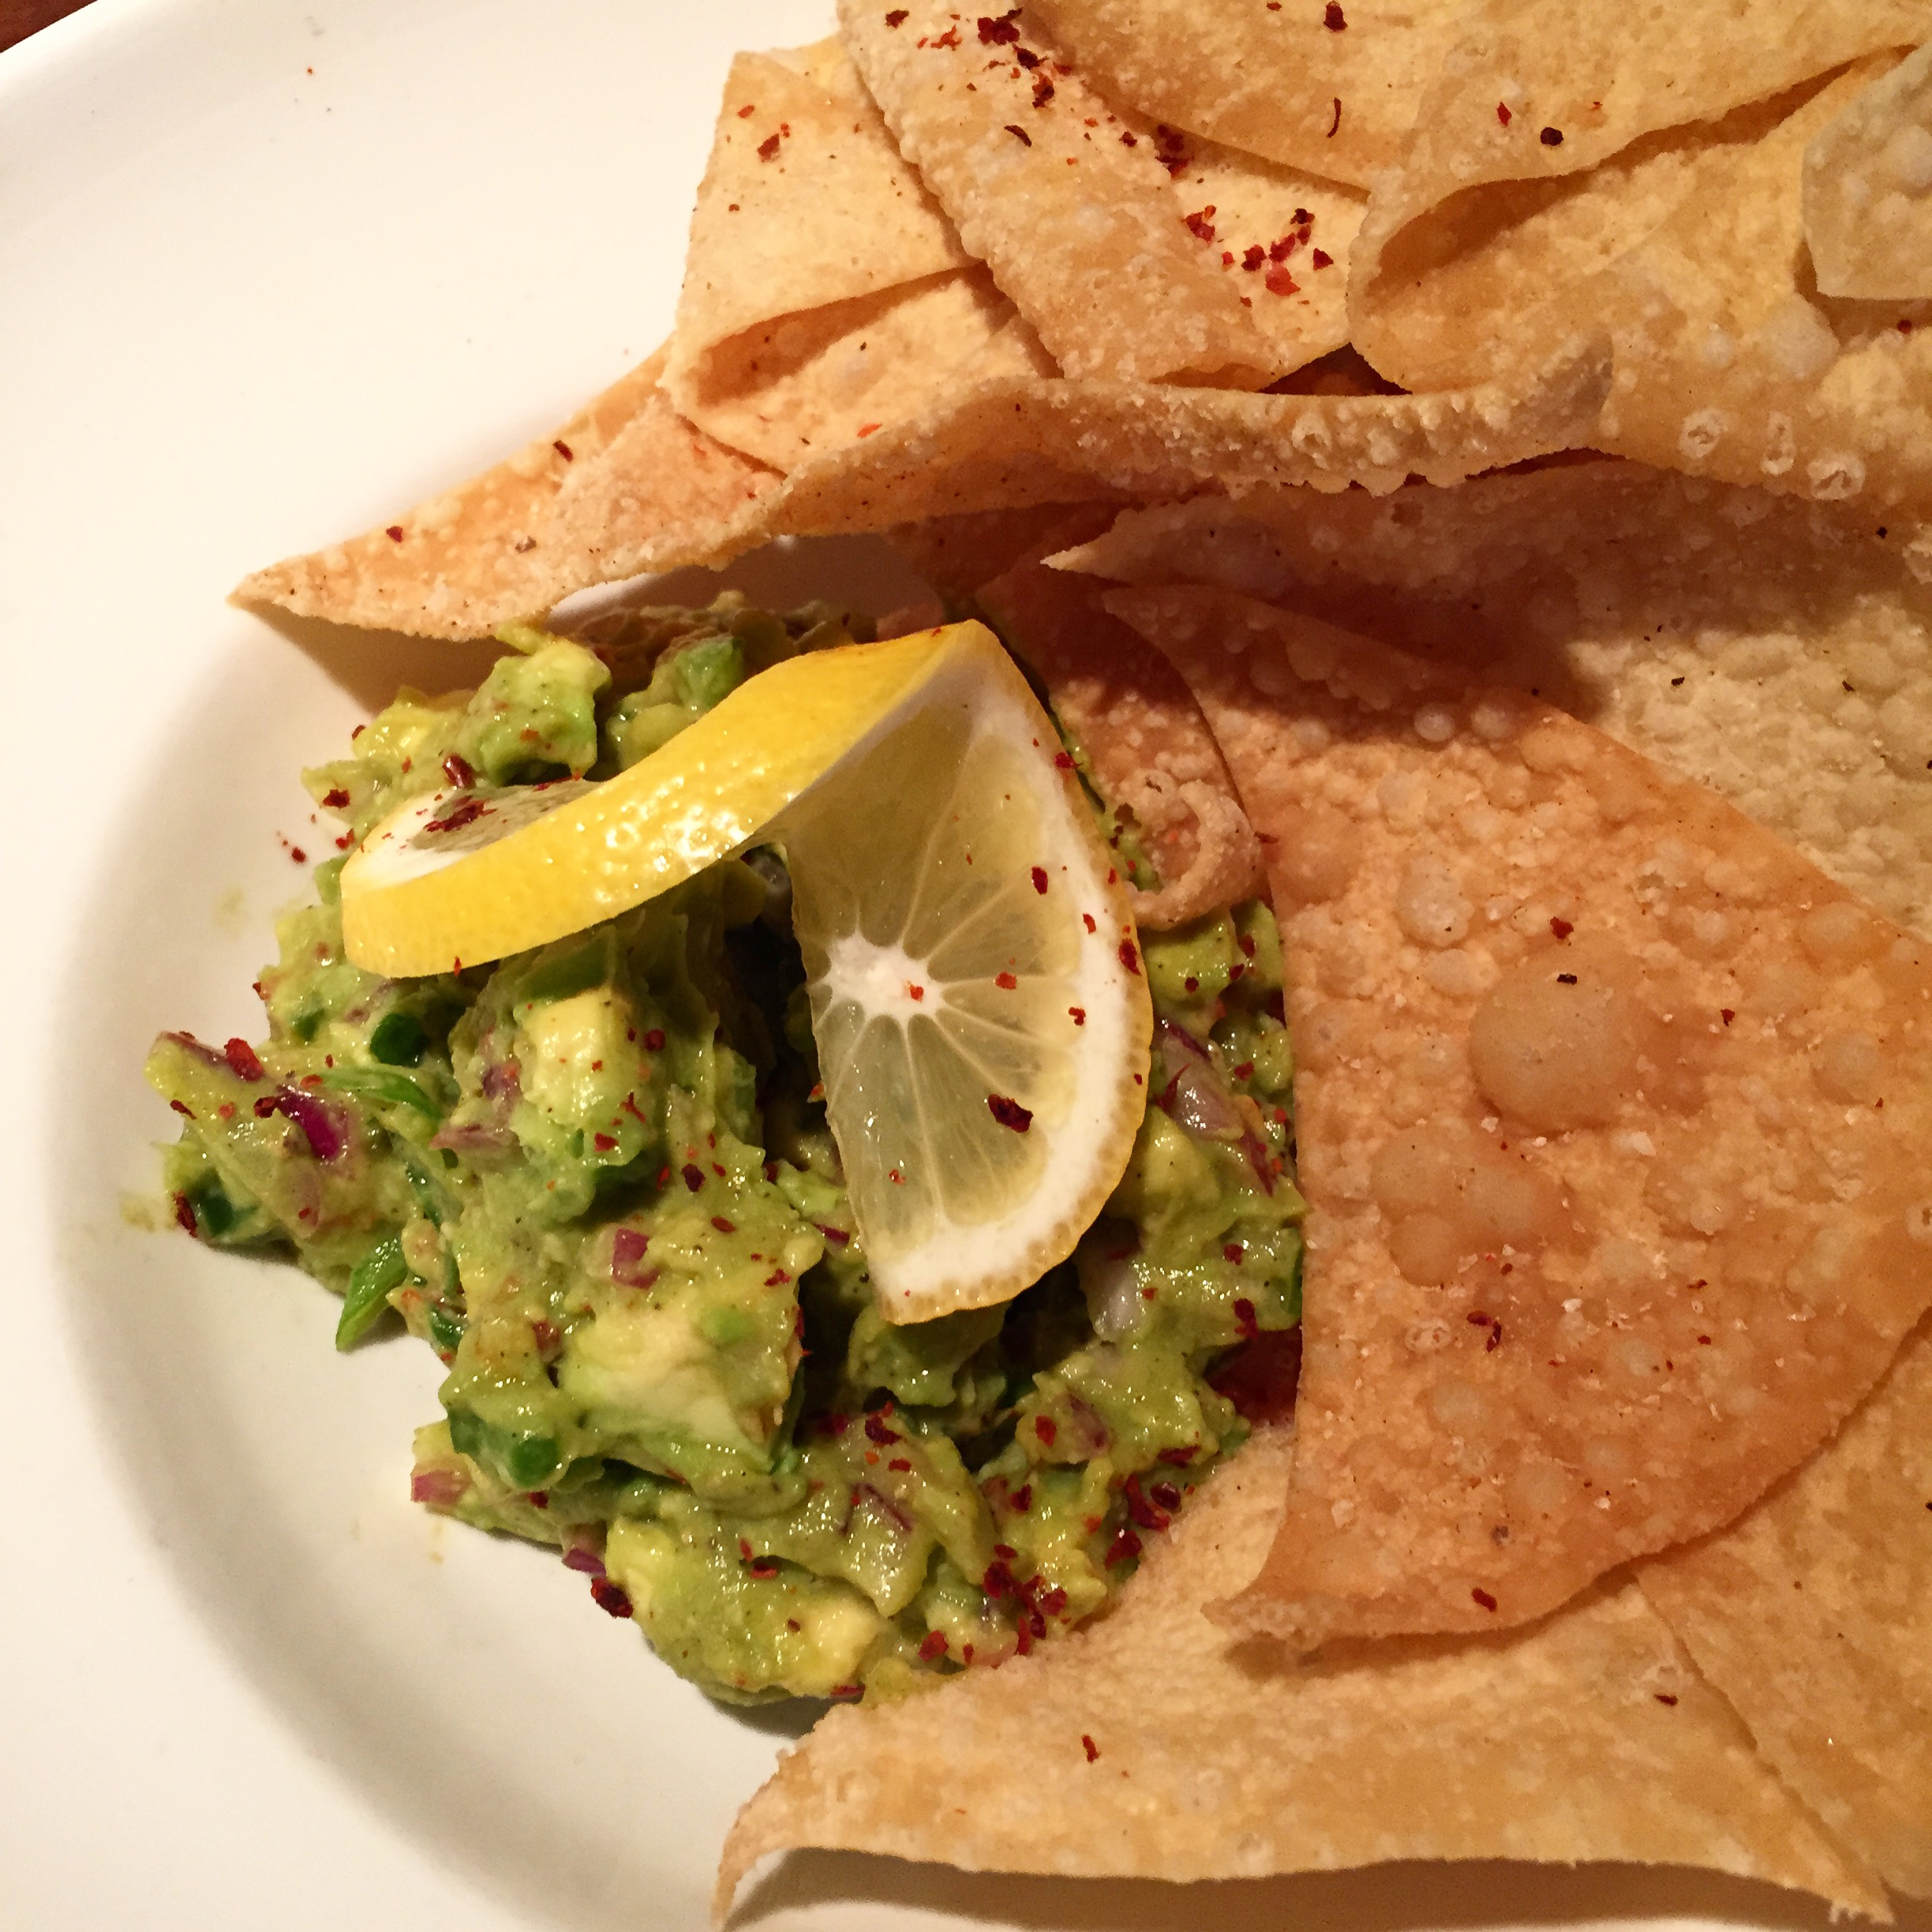 Housemade Guacamole & Chips